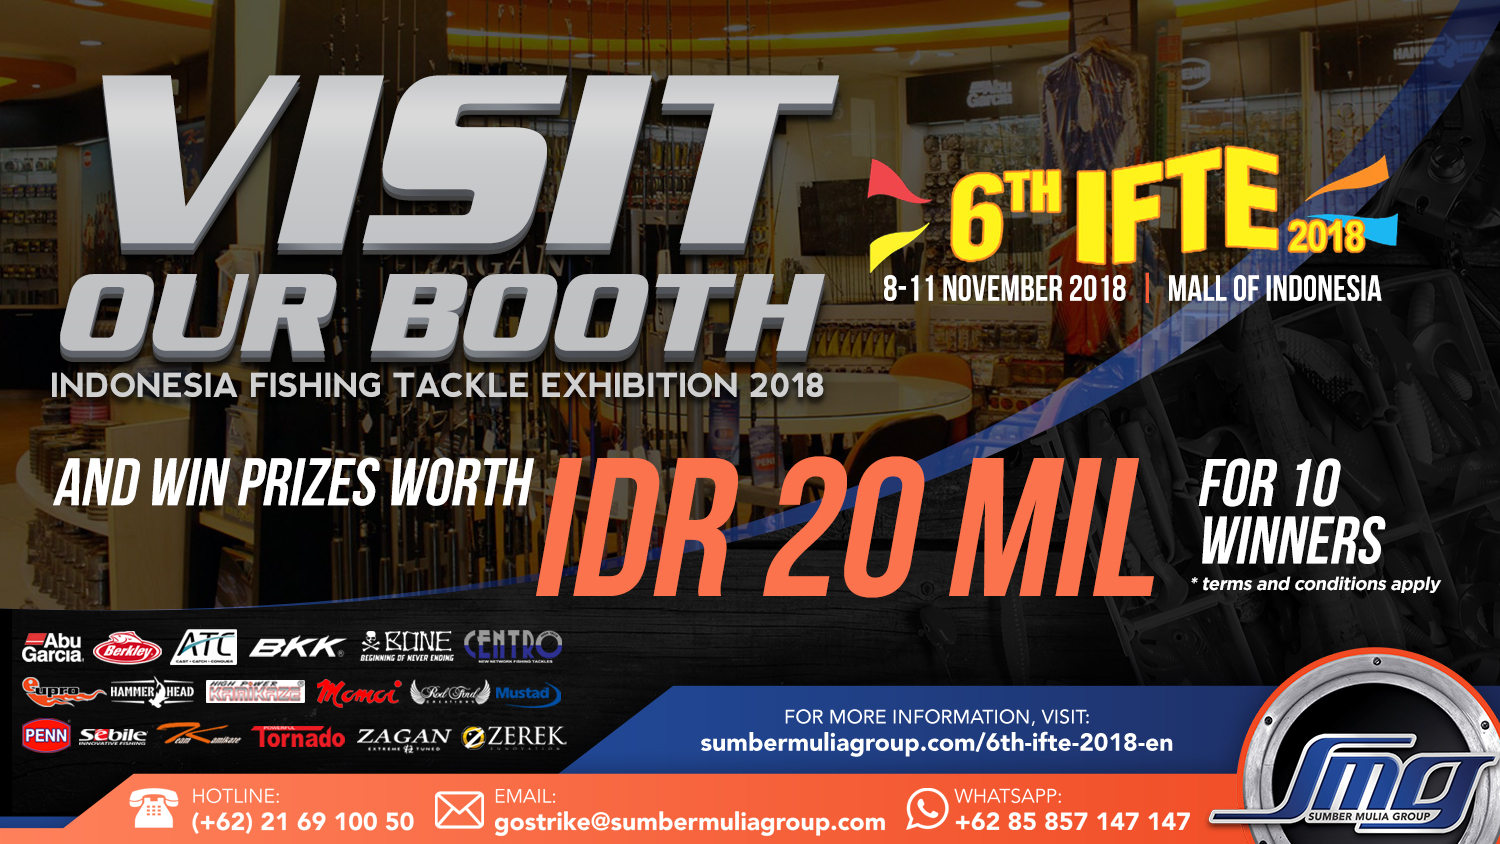 sumber-mulia-group-smg-news-6th-ifte-2018